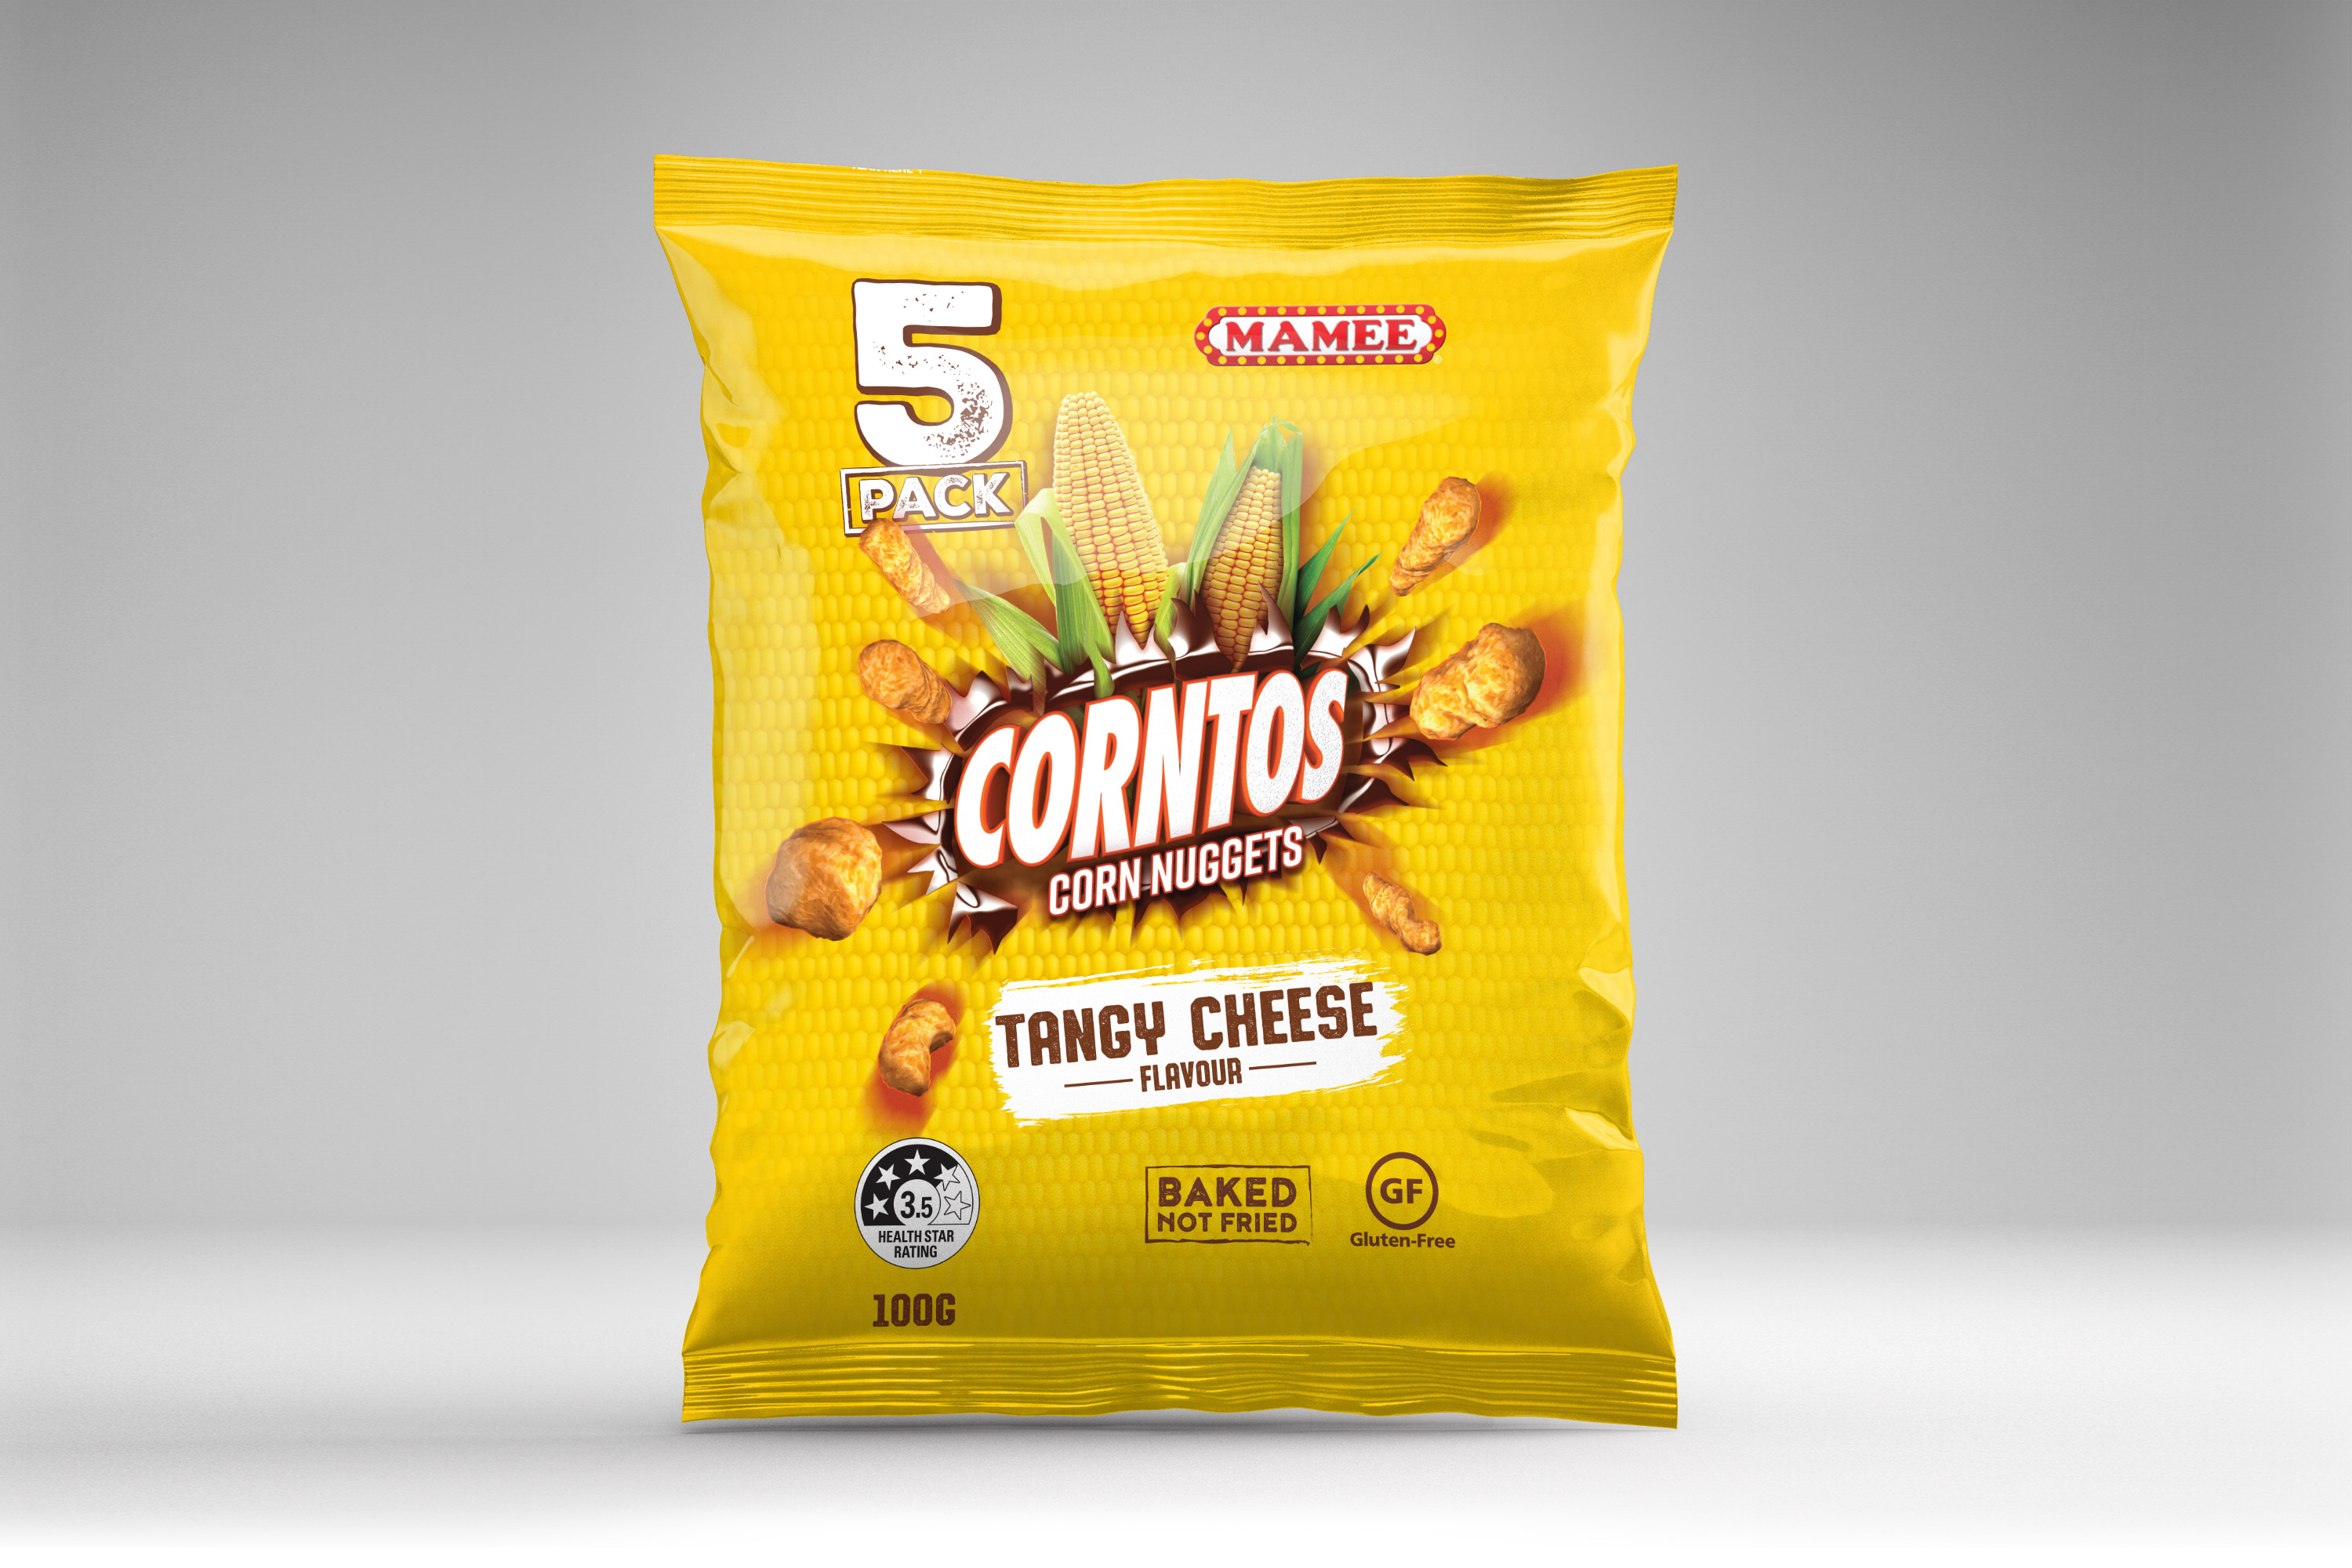 Mamee Corntos Cheese Packaging Design